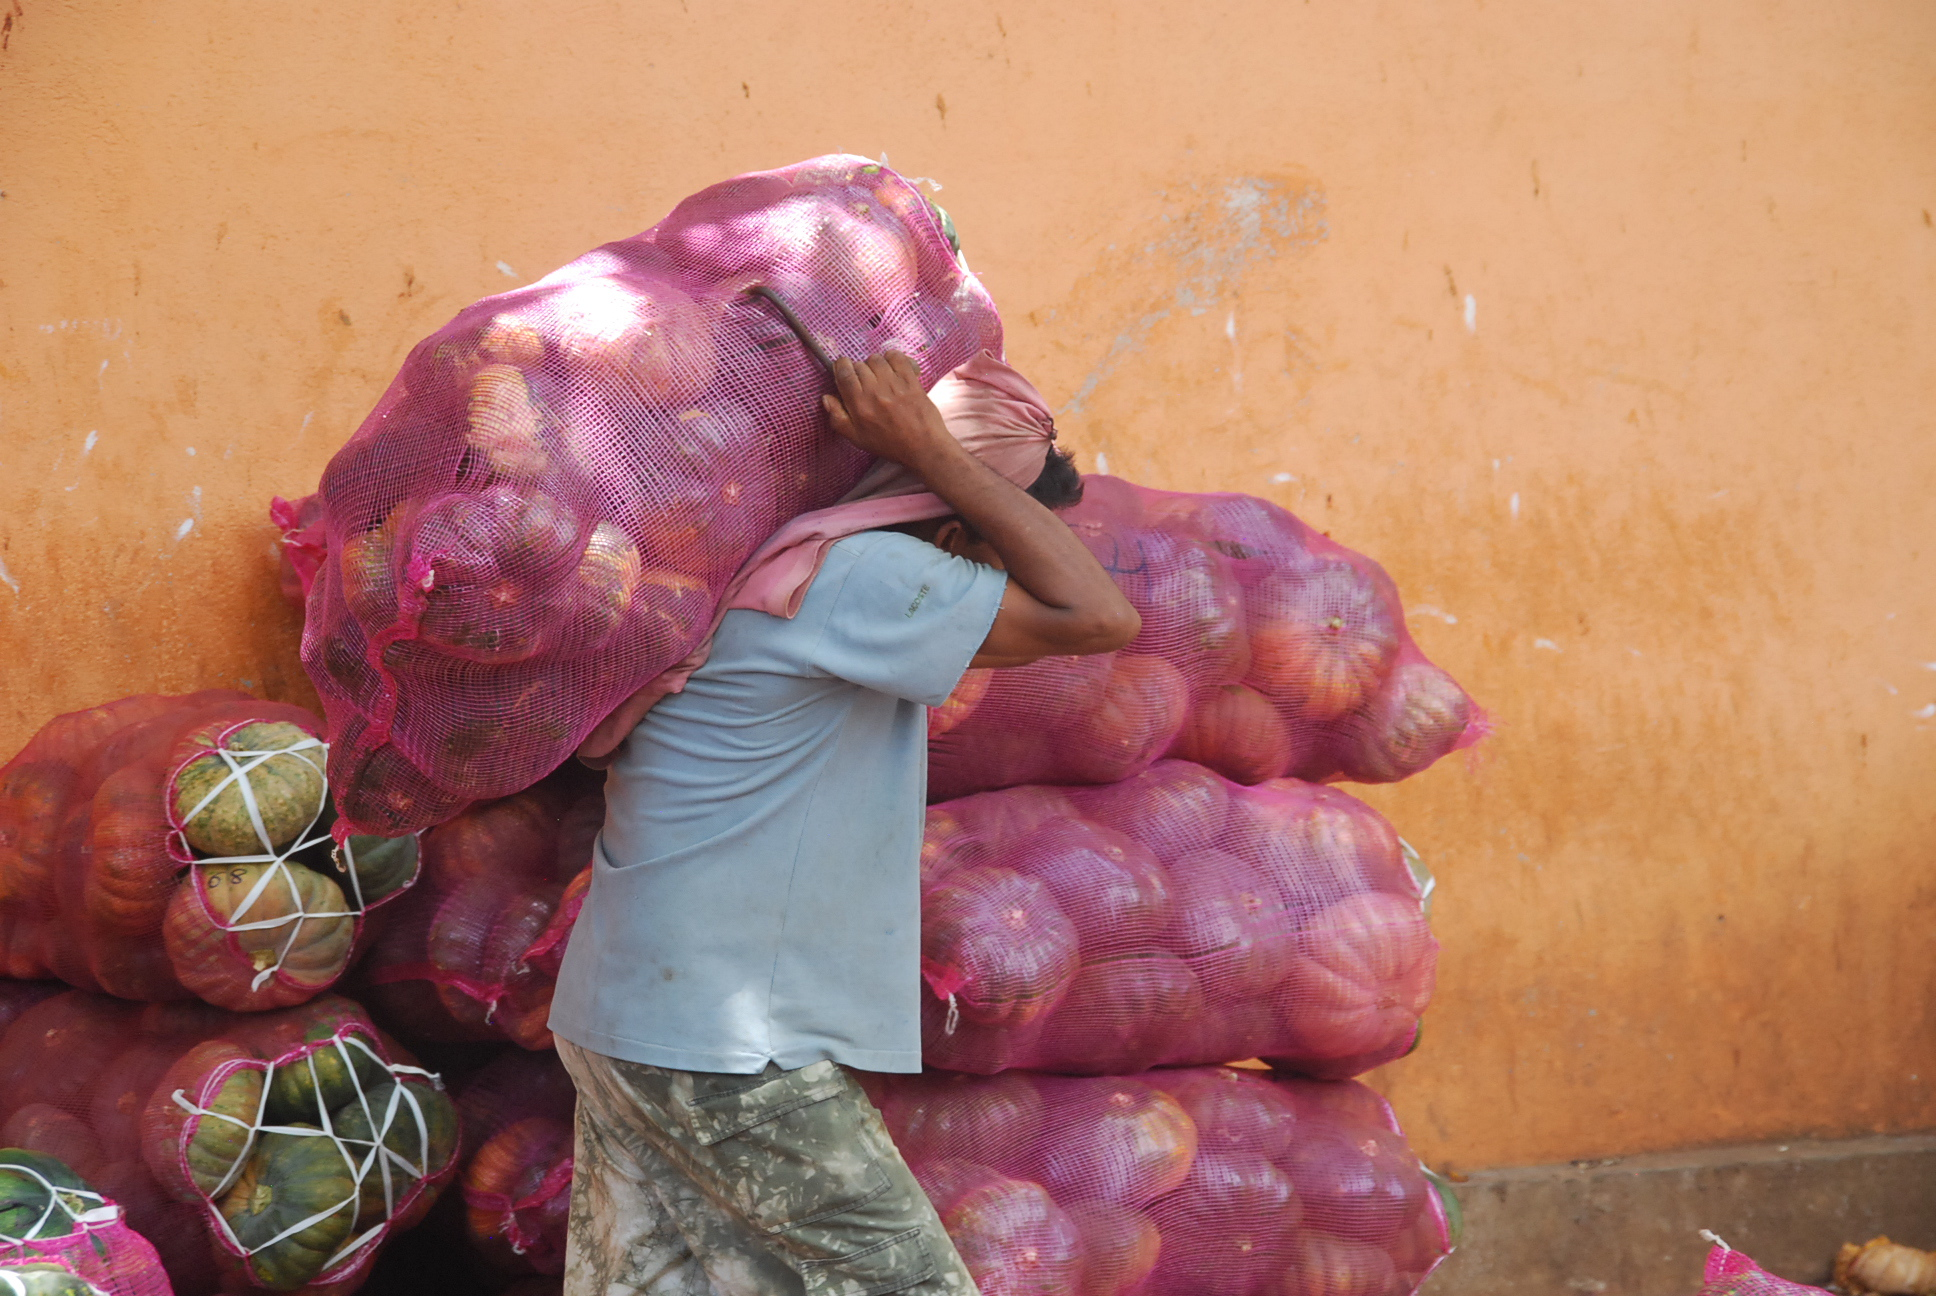 25 million people are being forced into labor. -